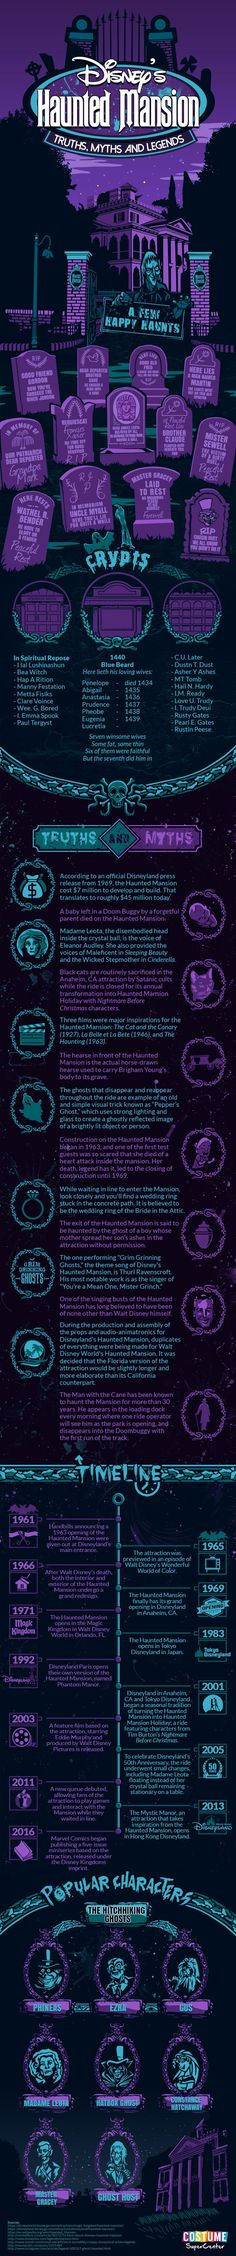 Disney's Haunted Mansion: Truths, Myths & Legends Disney Rides, Disney Love, Disney Magic, Disney Stuff, Disney Disney, Disney Dream, Citations Disney, Pixar, Quotes Girlfriend